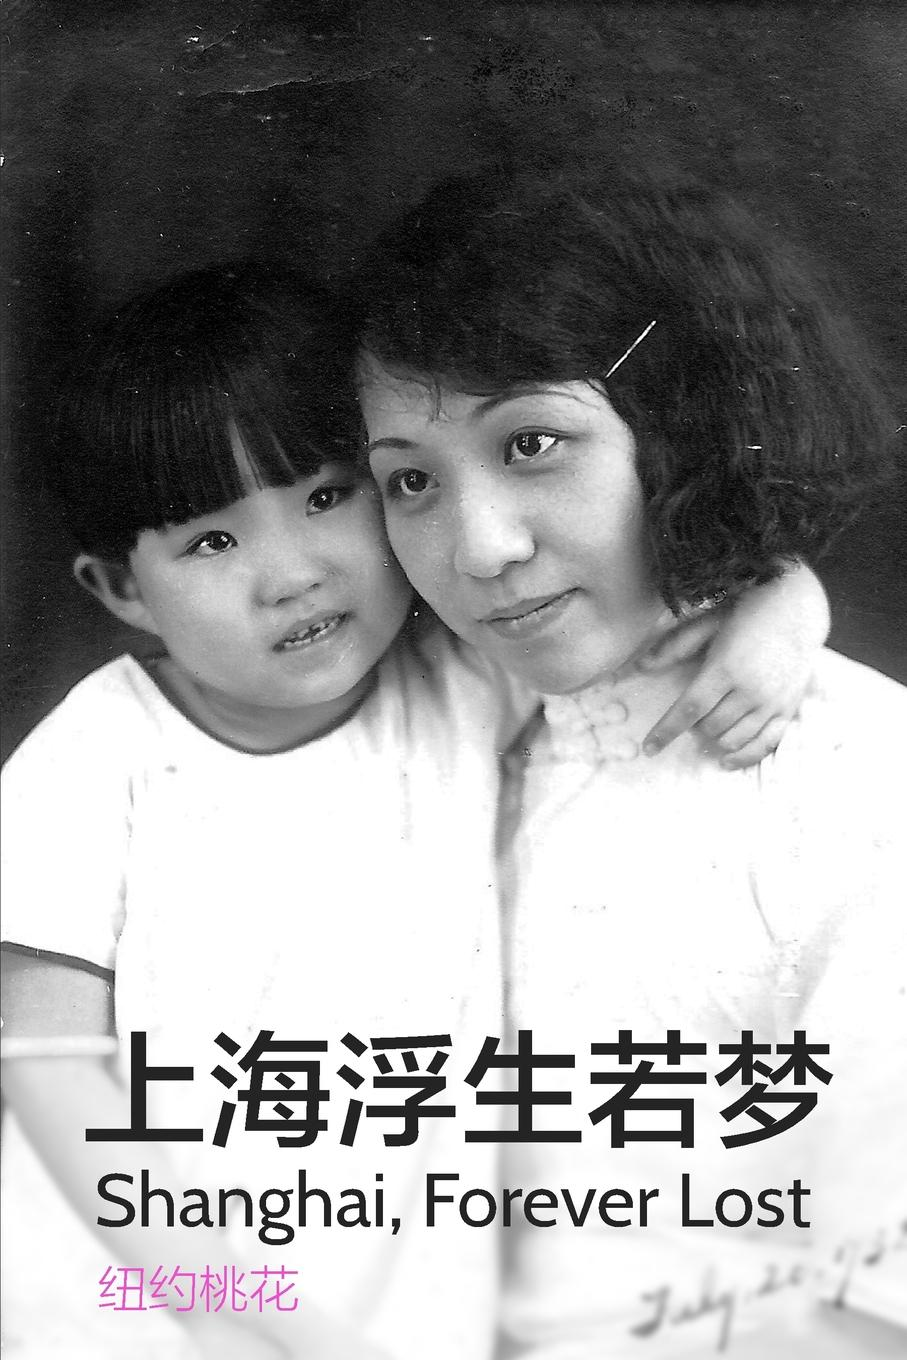 Sonia Hu Shanghai Forever Lost. A Biography of My Grandmother and Mother 胡柏玲与历史课改同行:历史教学关键问题精解